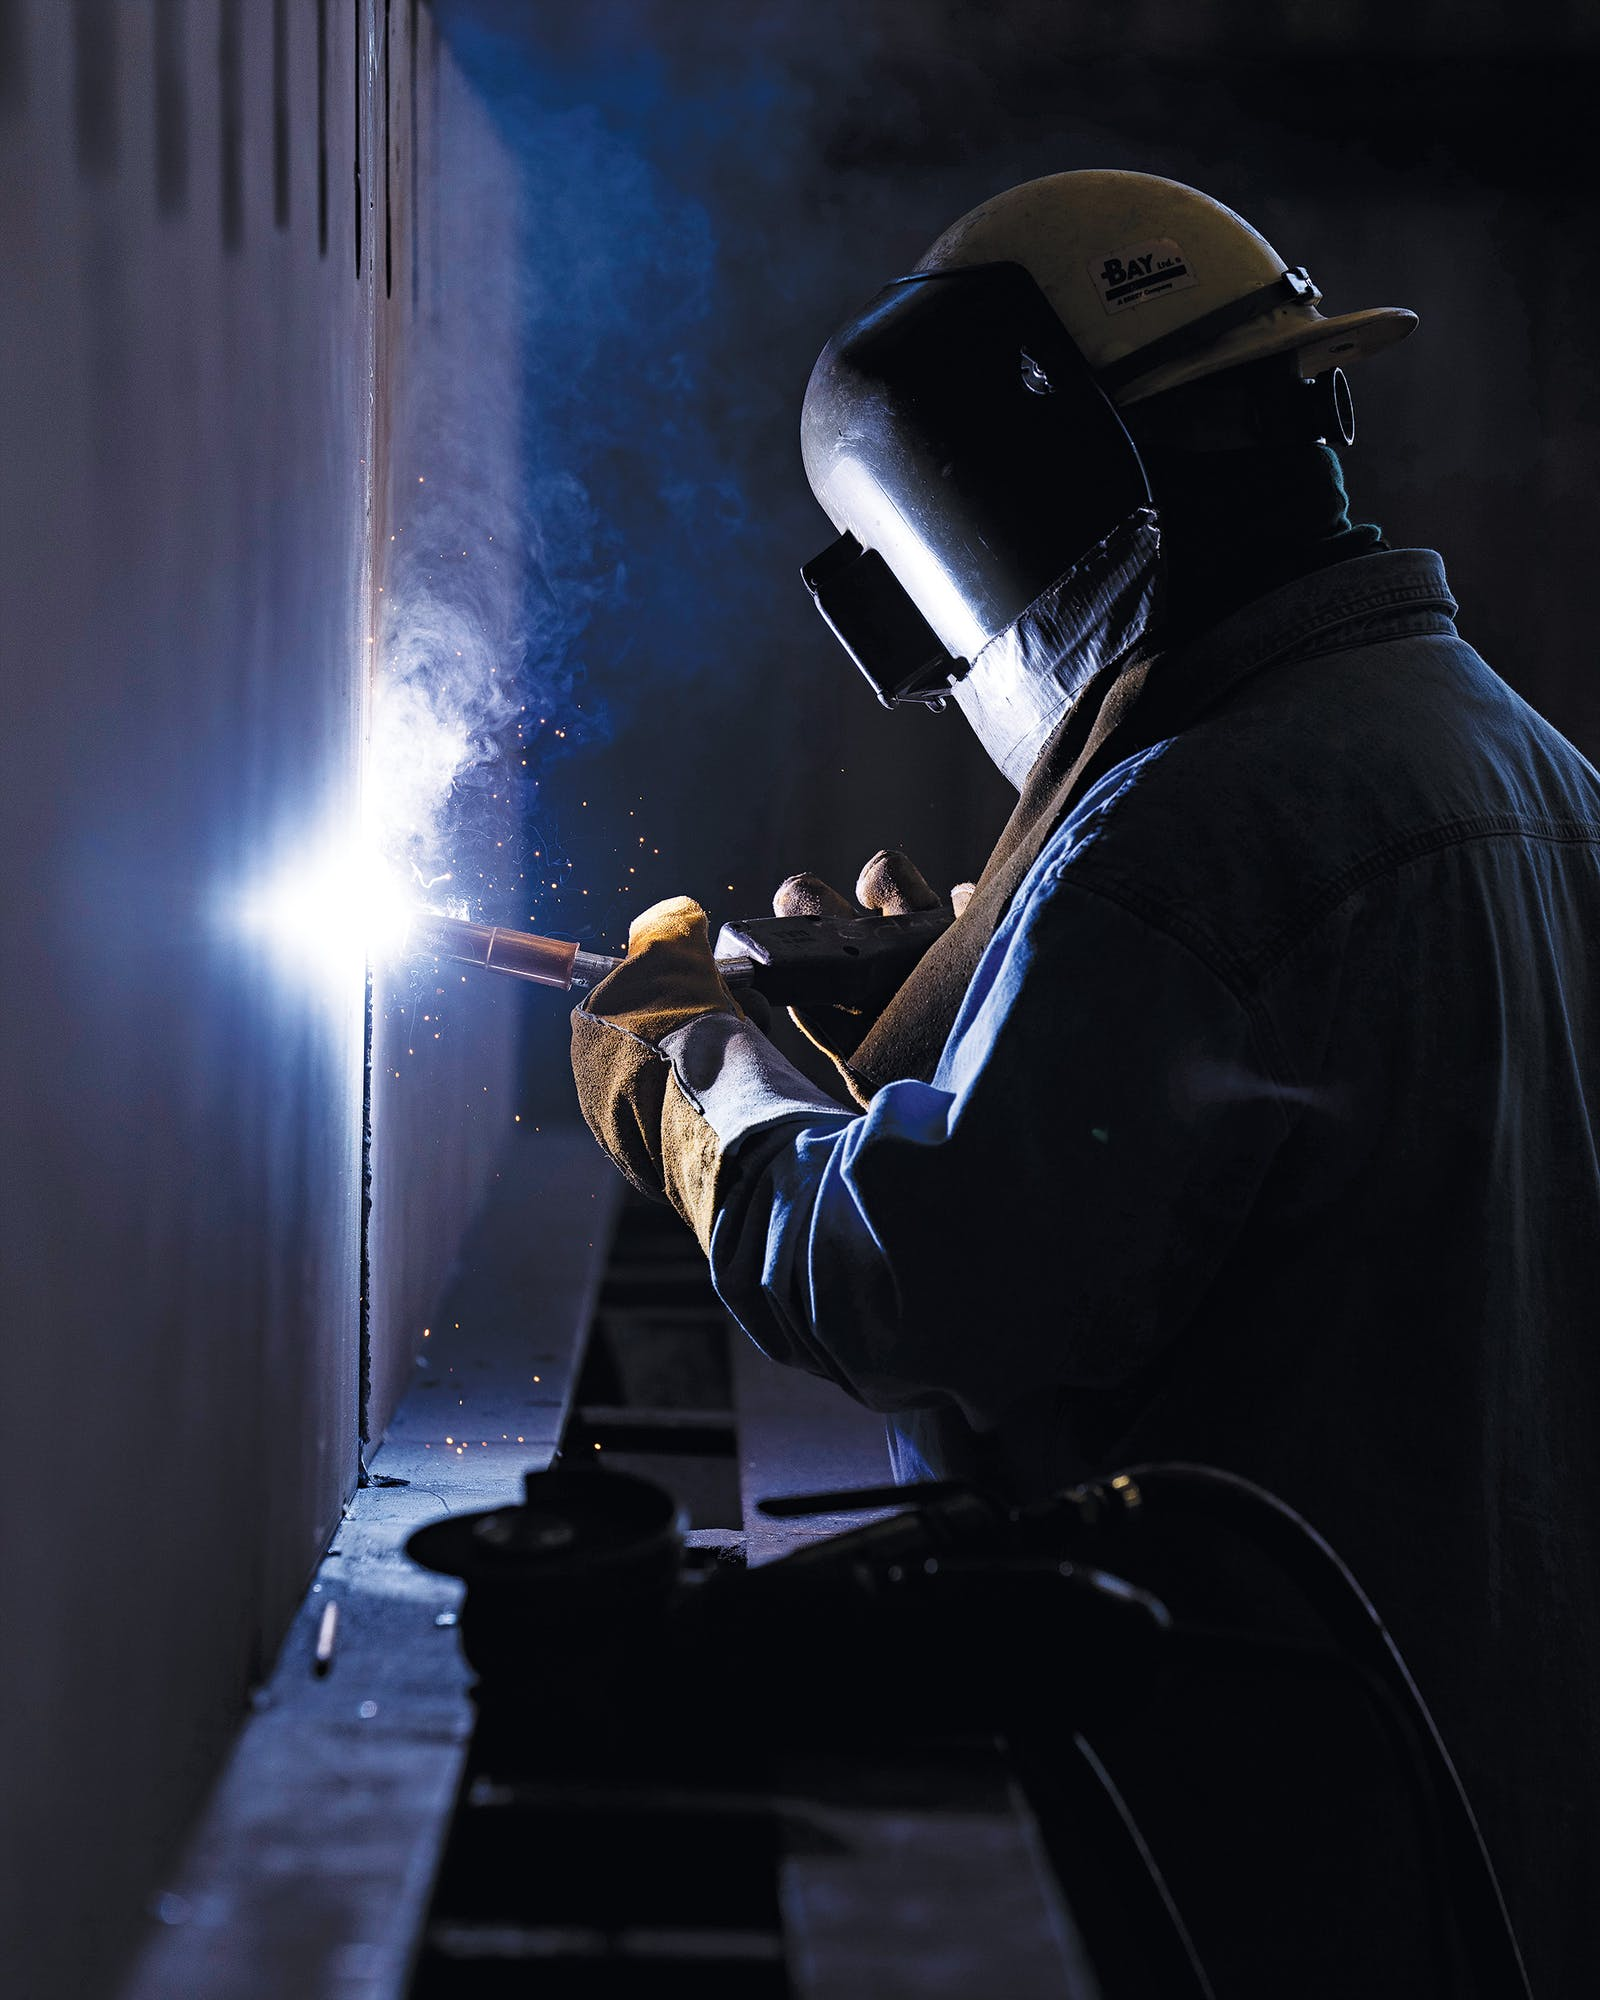 A worker welding one of the sub-blocks of the Charybdis.